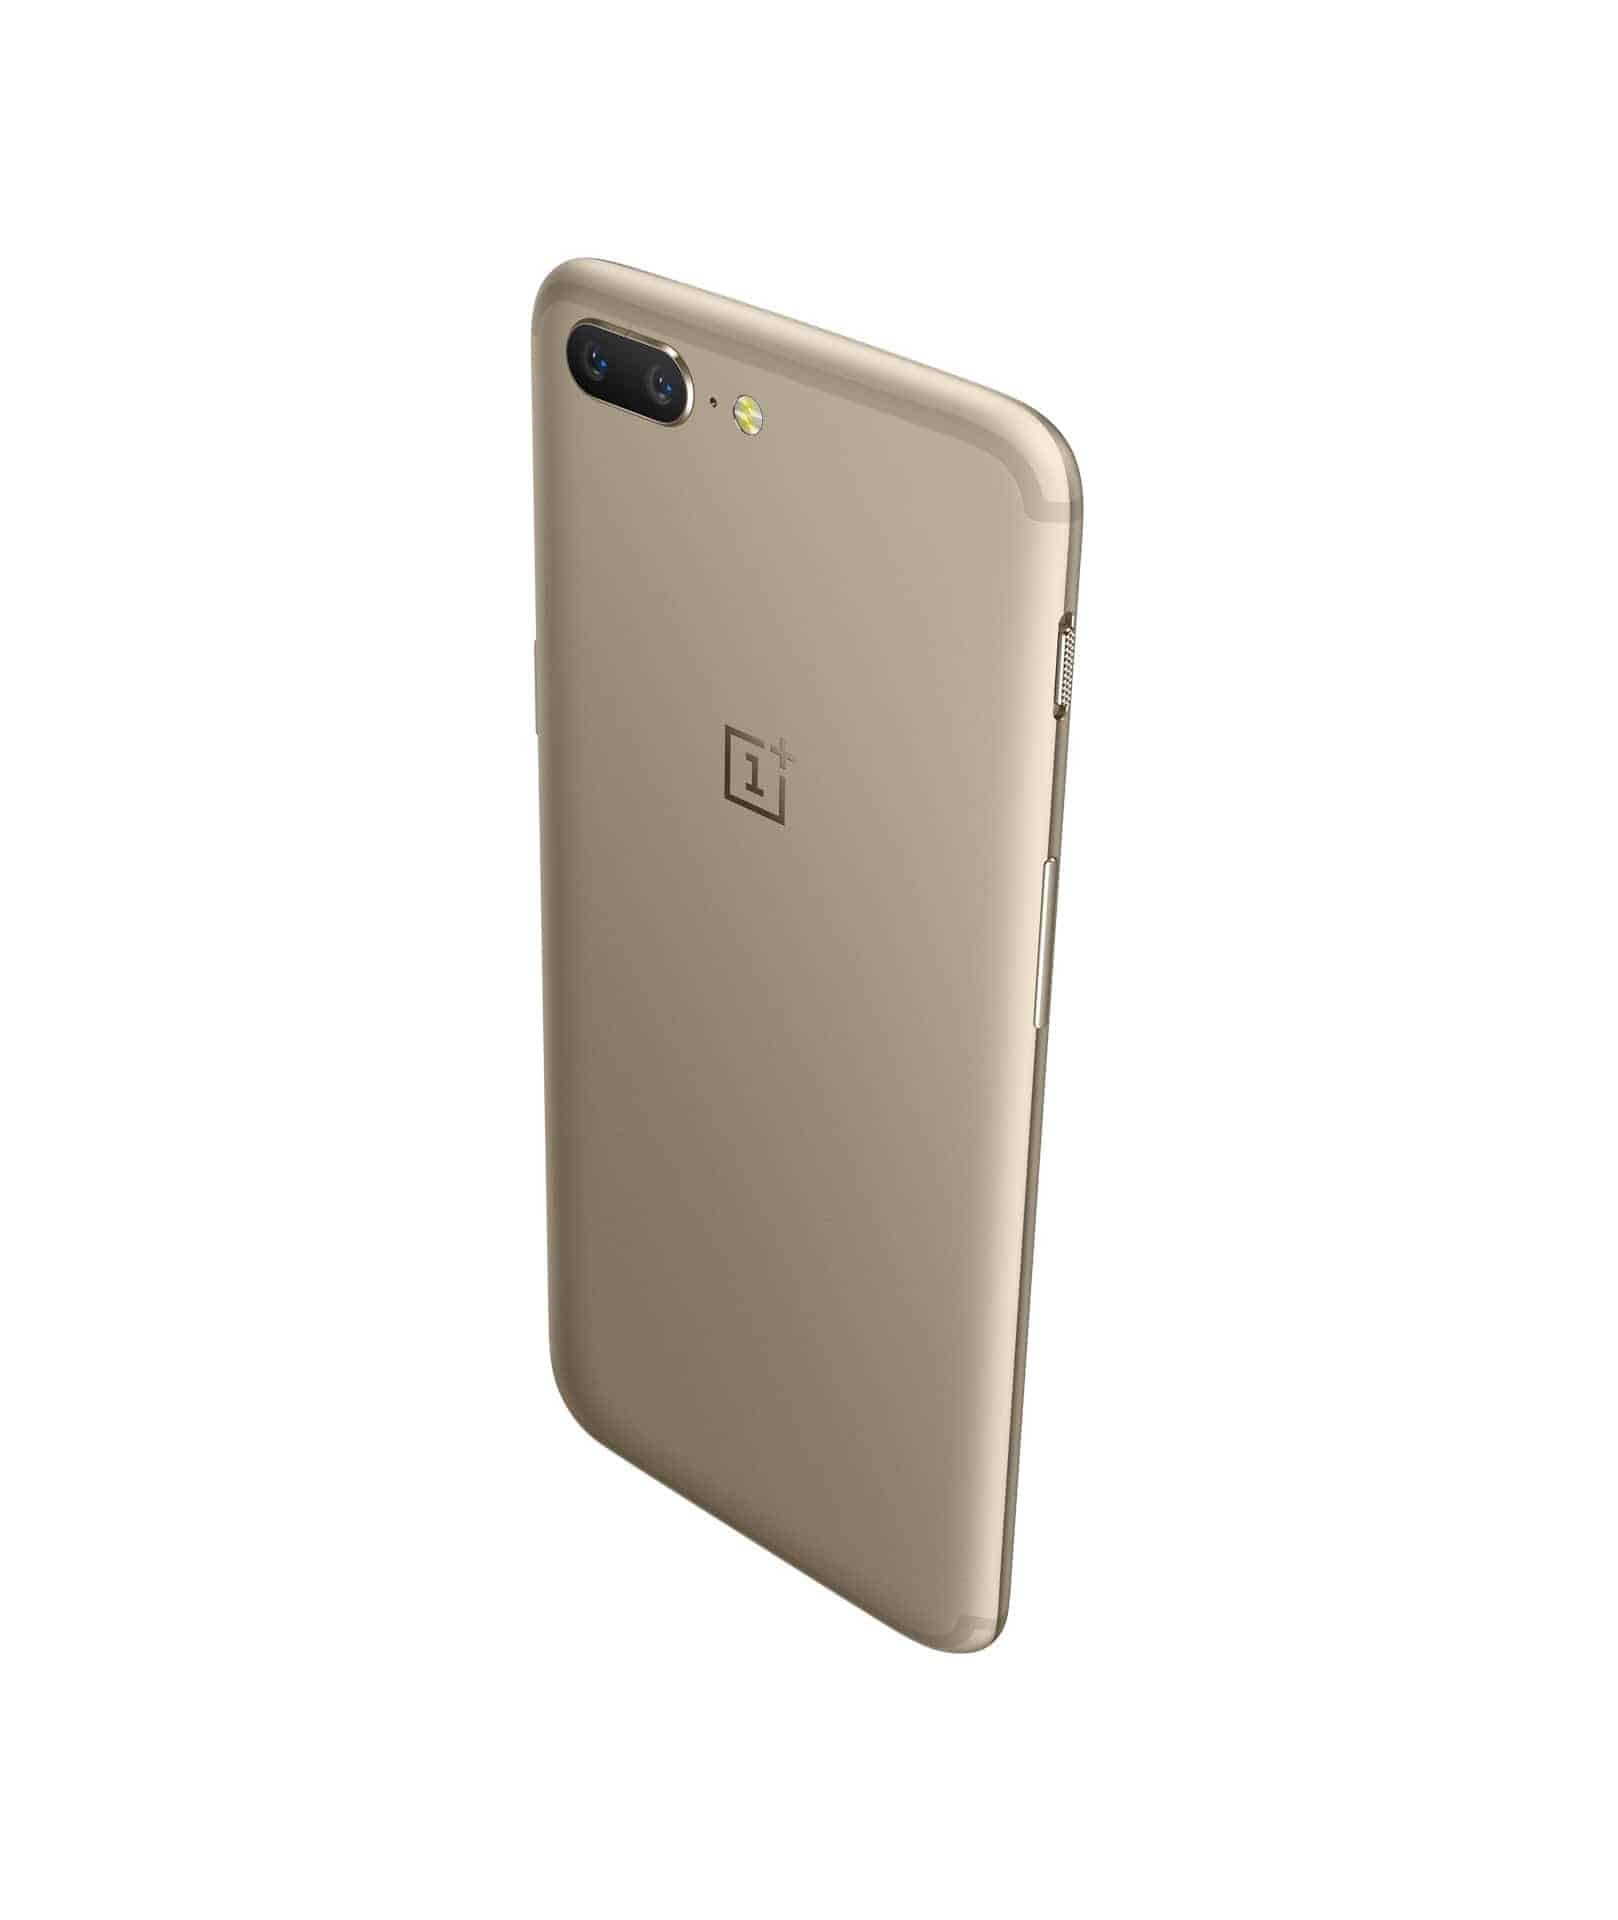 OnePlus 5 Soft Gold 1